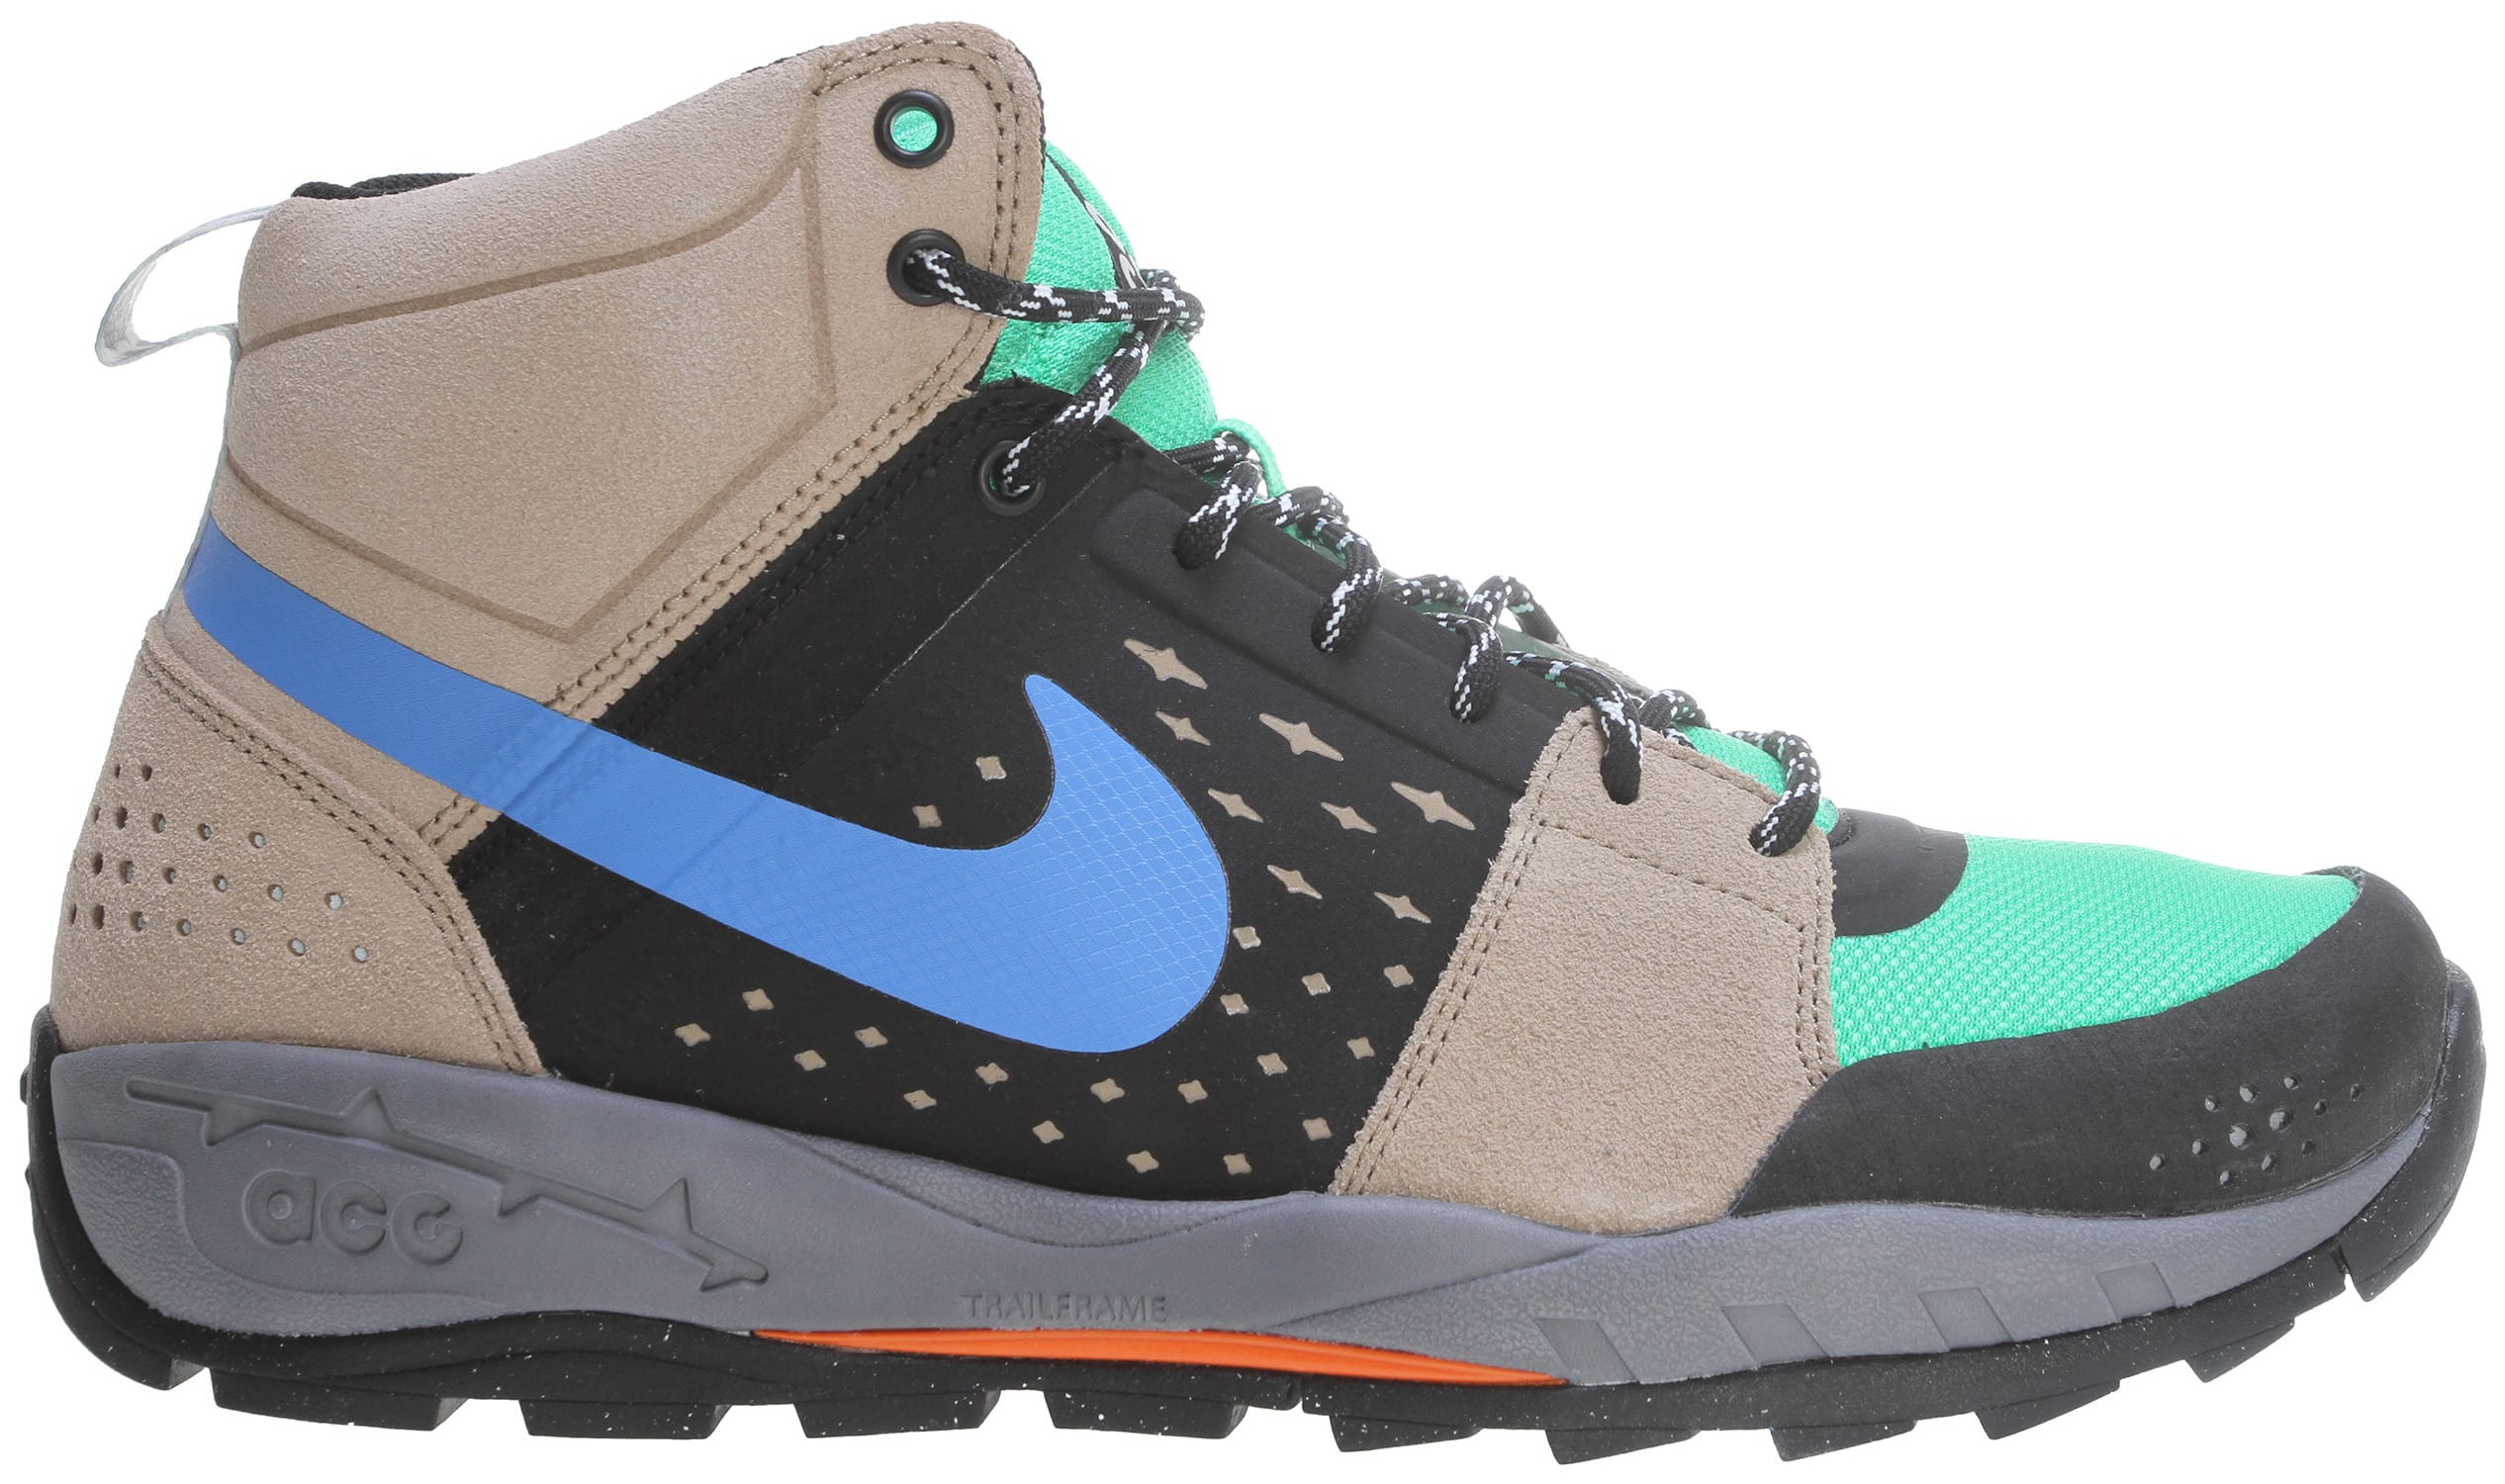 Nike Air Alder Hiking Boots Mid zMpGSqULV